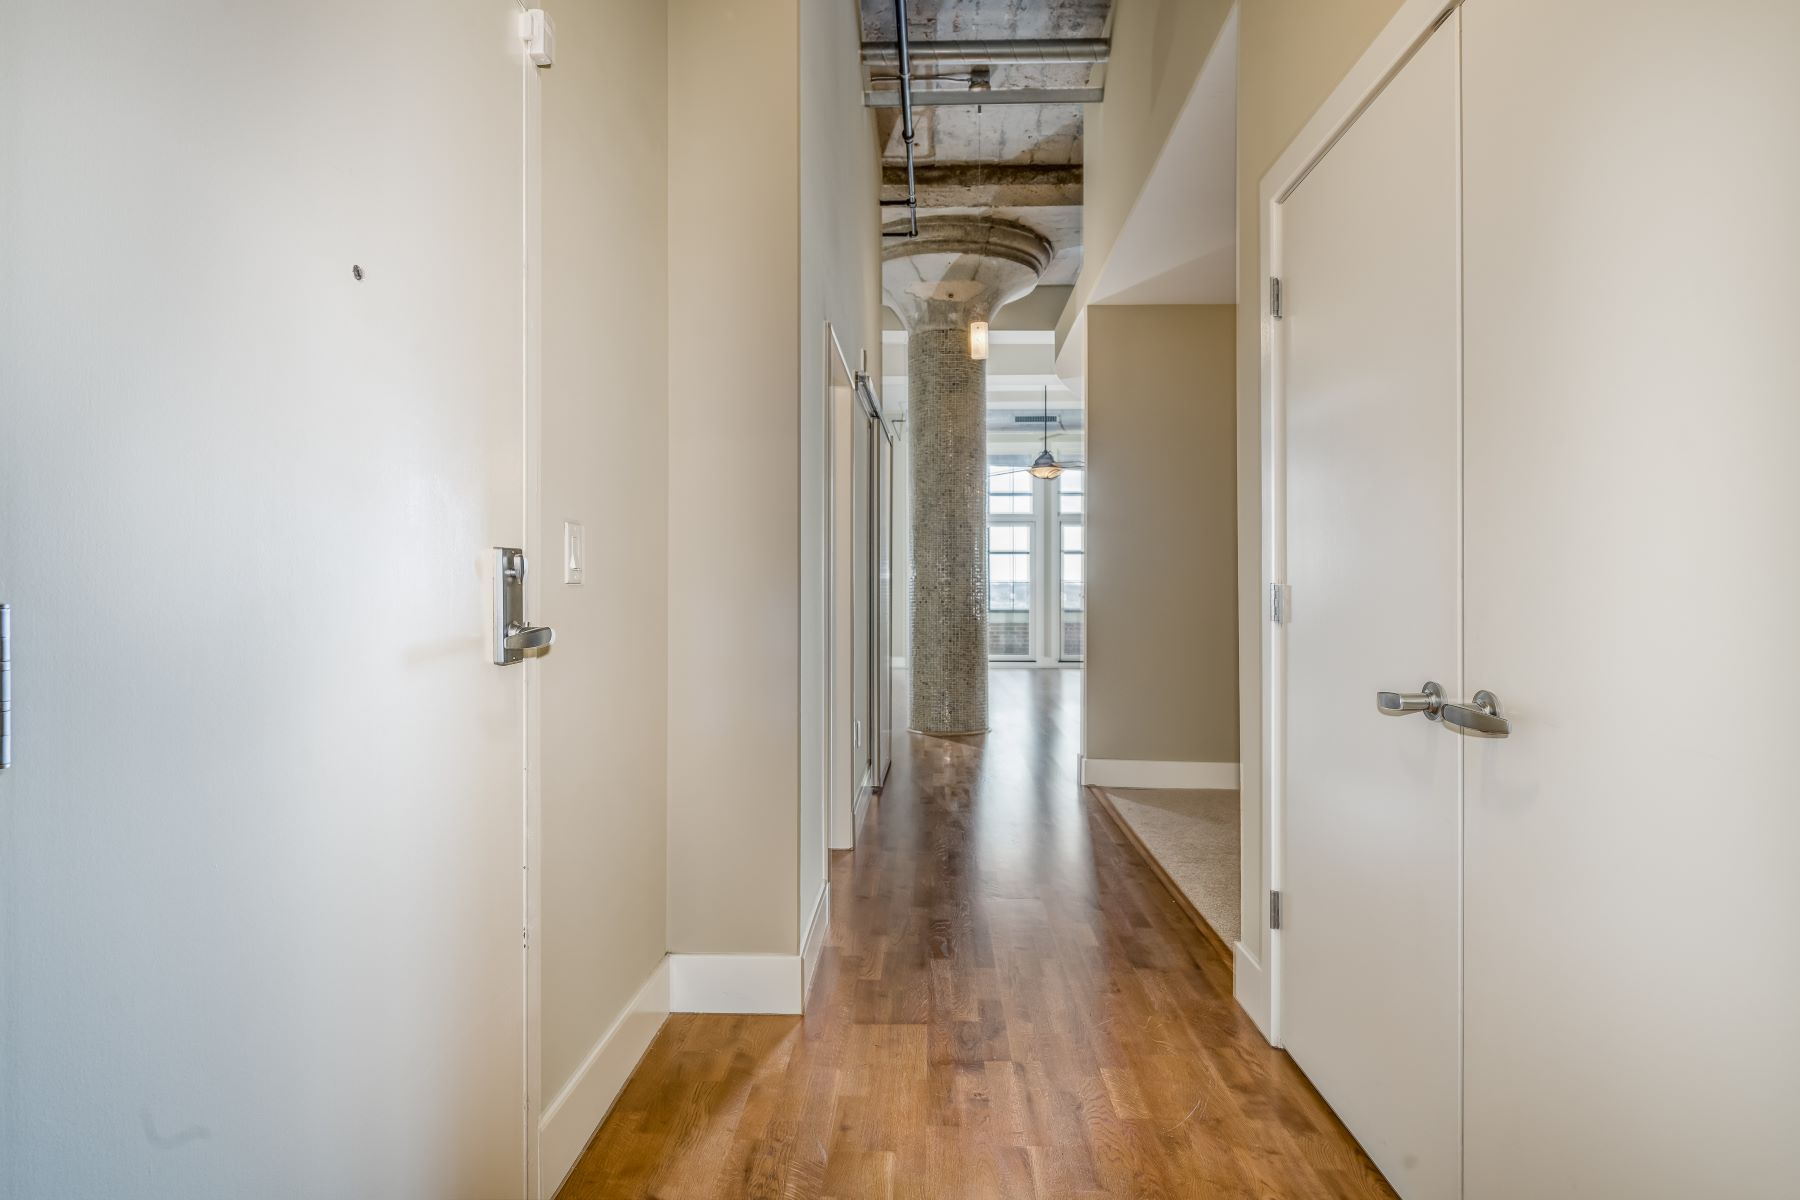 Additional photo for property listing at 4100 Forest Park Avenue #516, St. Louis, MO 63108 4100 Forest Park Avenue #516 St. Louis, Missouri 63108 United States